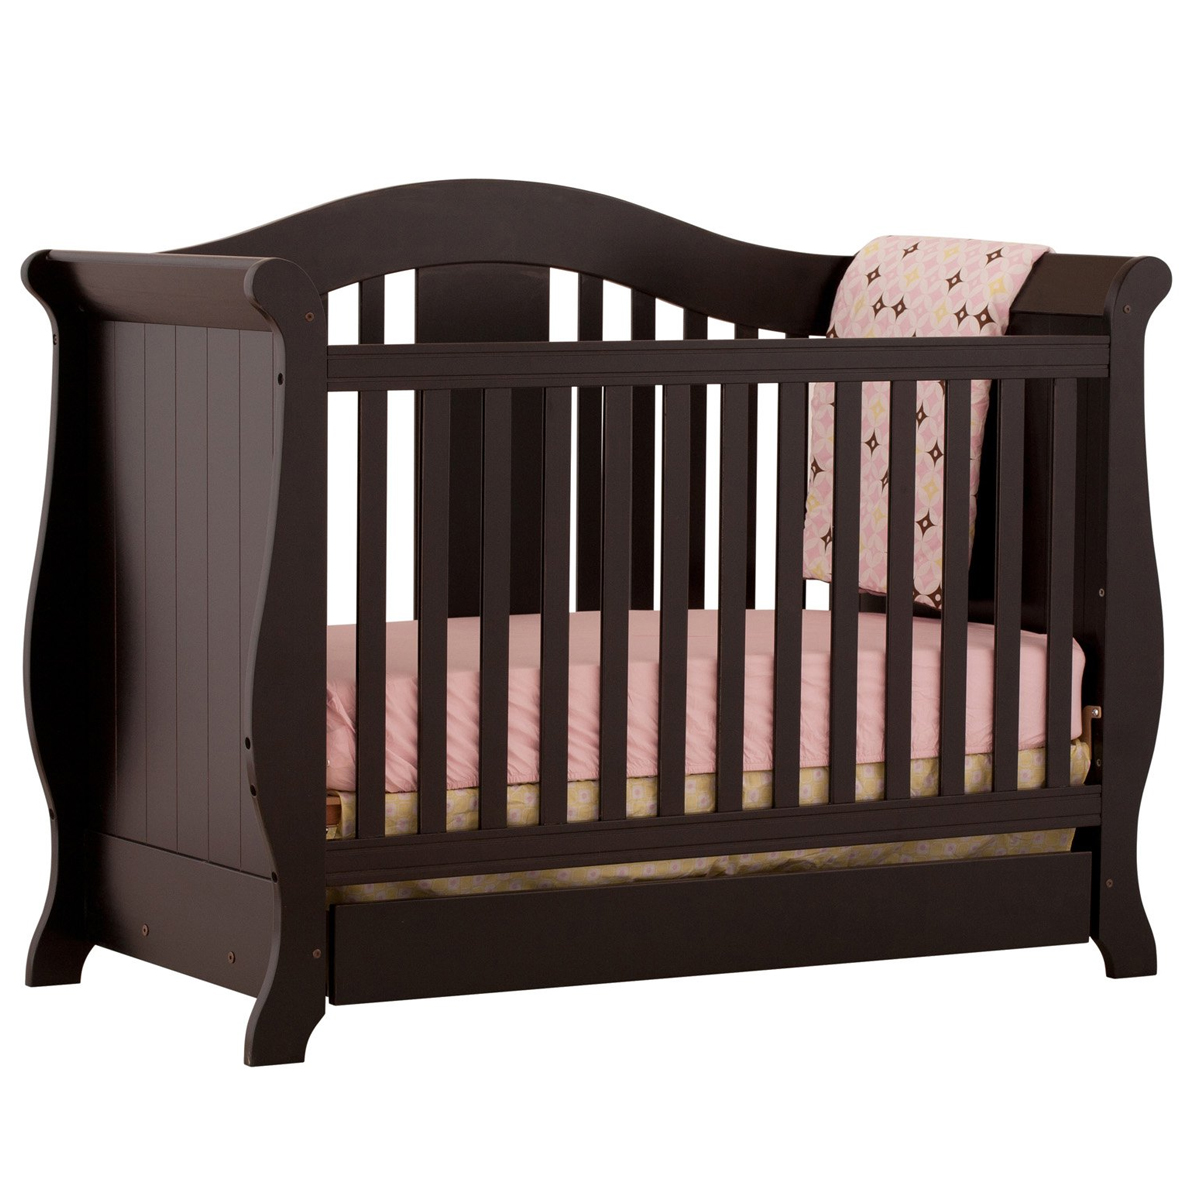 Used crib for sale in nj - Storkcraft Vittoria 3 In 1 Fixed Side Convertible Crib In Black